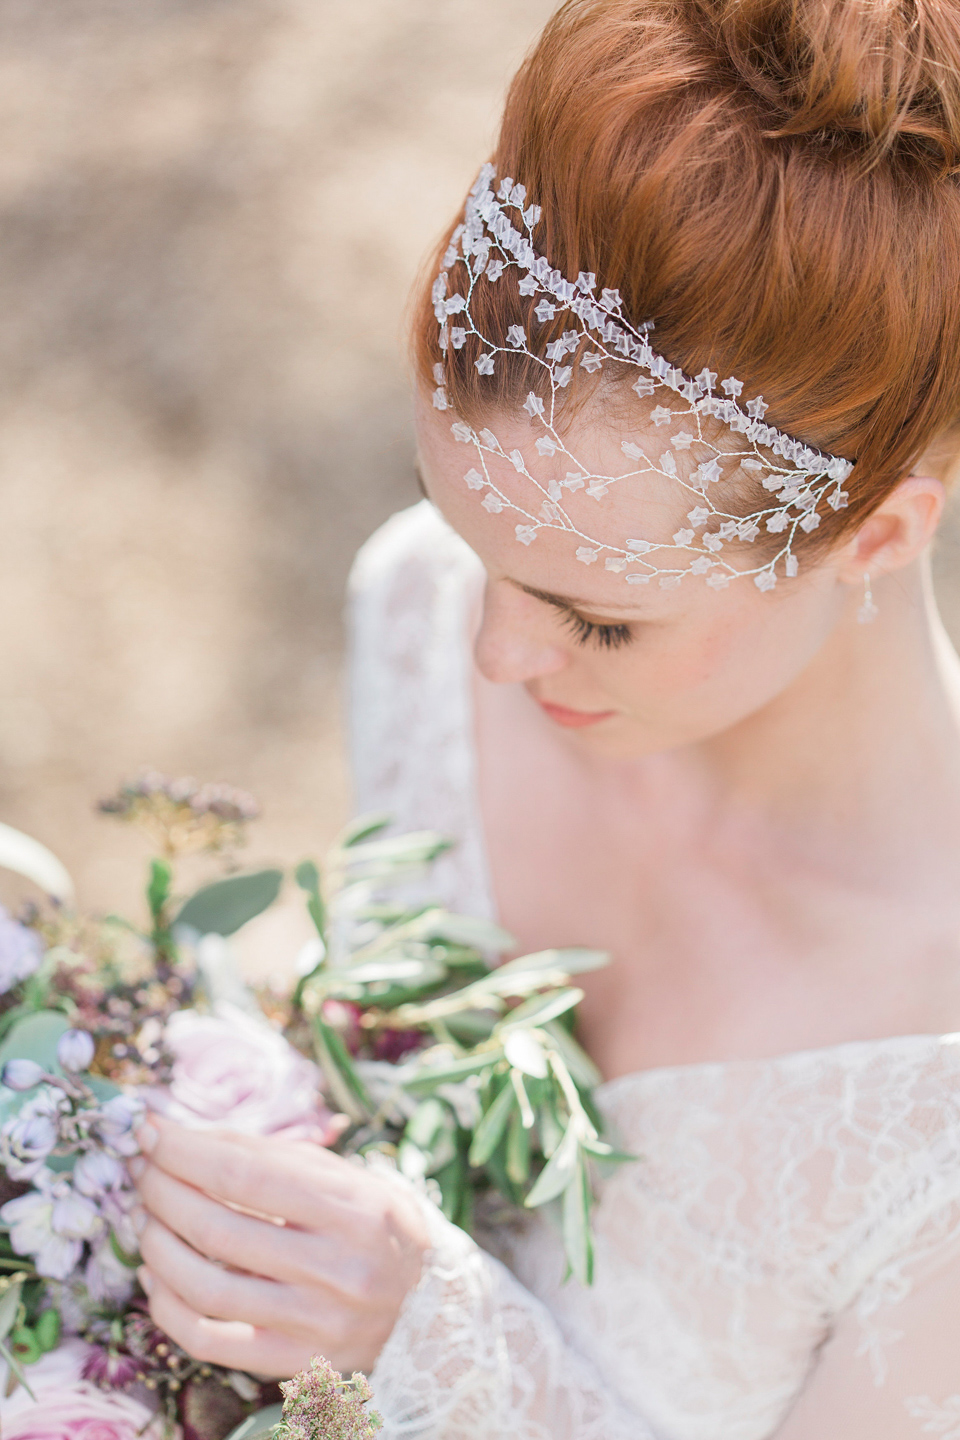 Hermione Harbutt Nature Inspired Hair Vines And Delicate